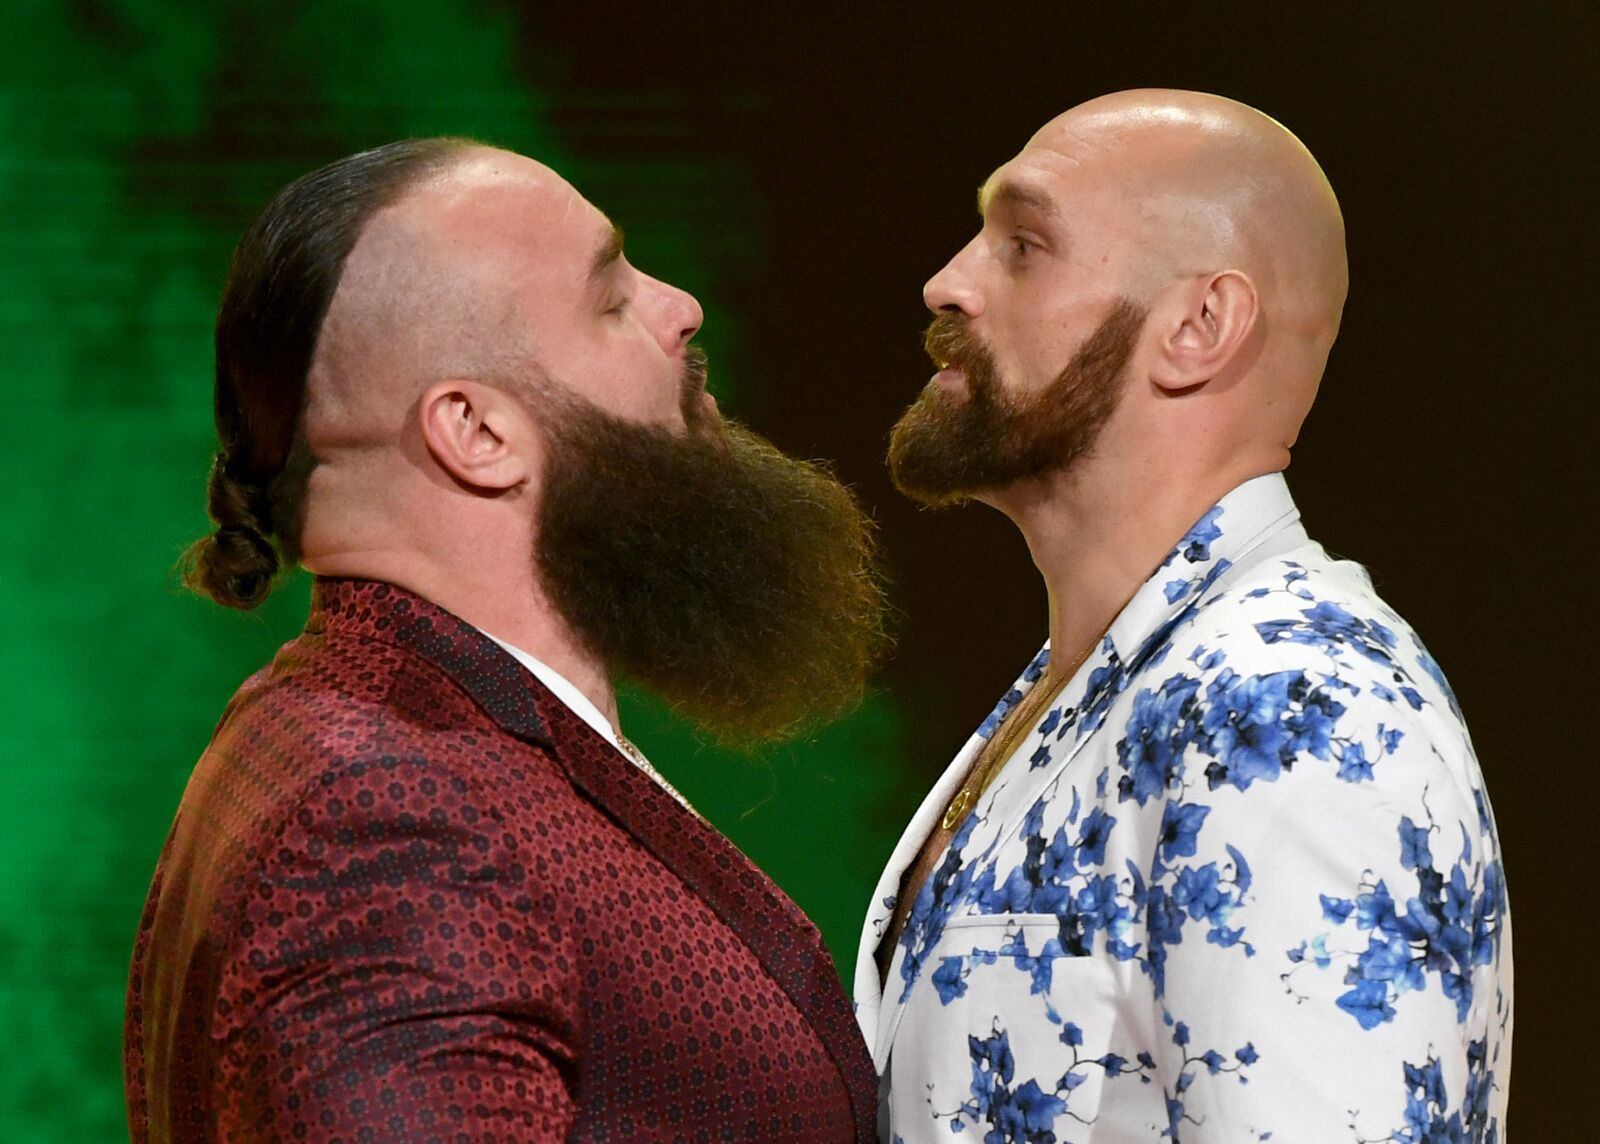 WWE announces two blockbuster matches for Crown Jewel event